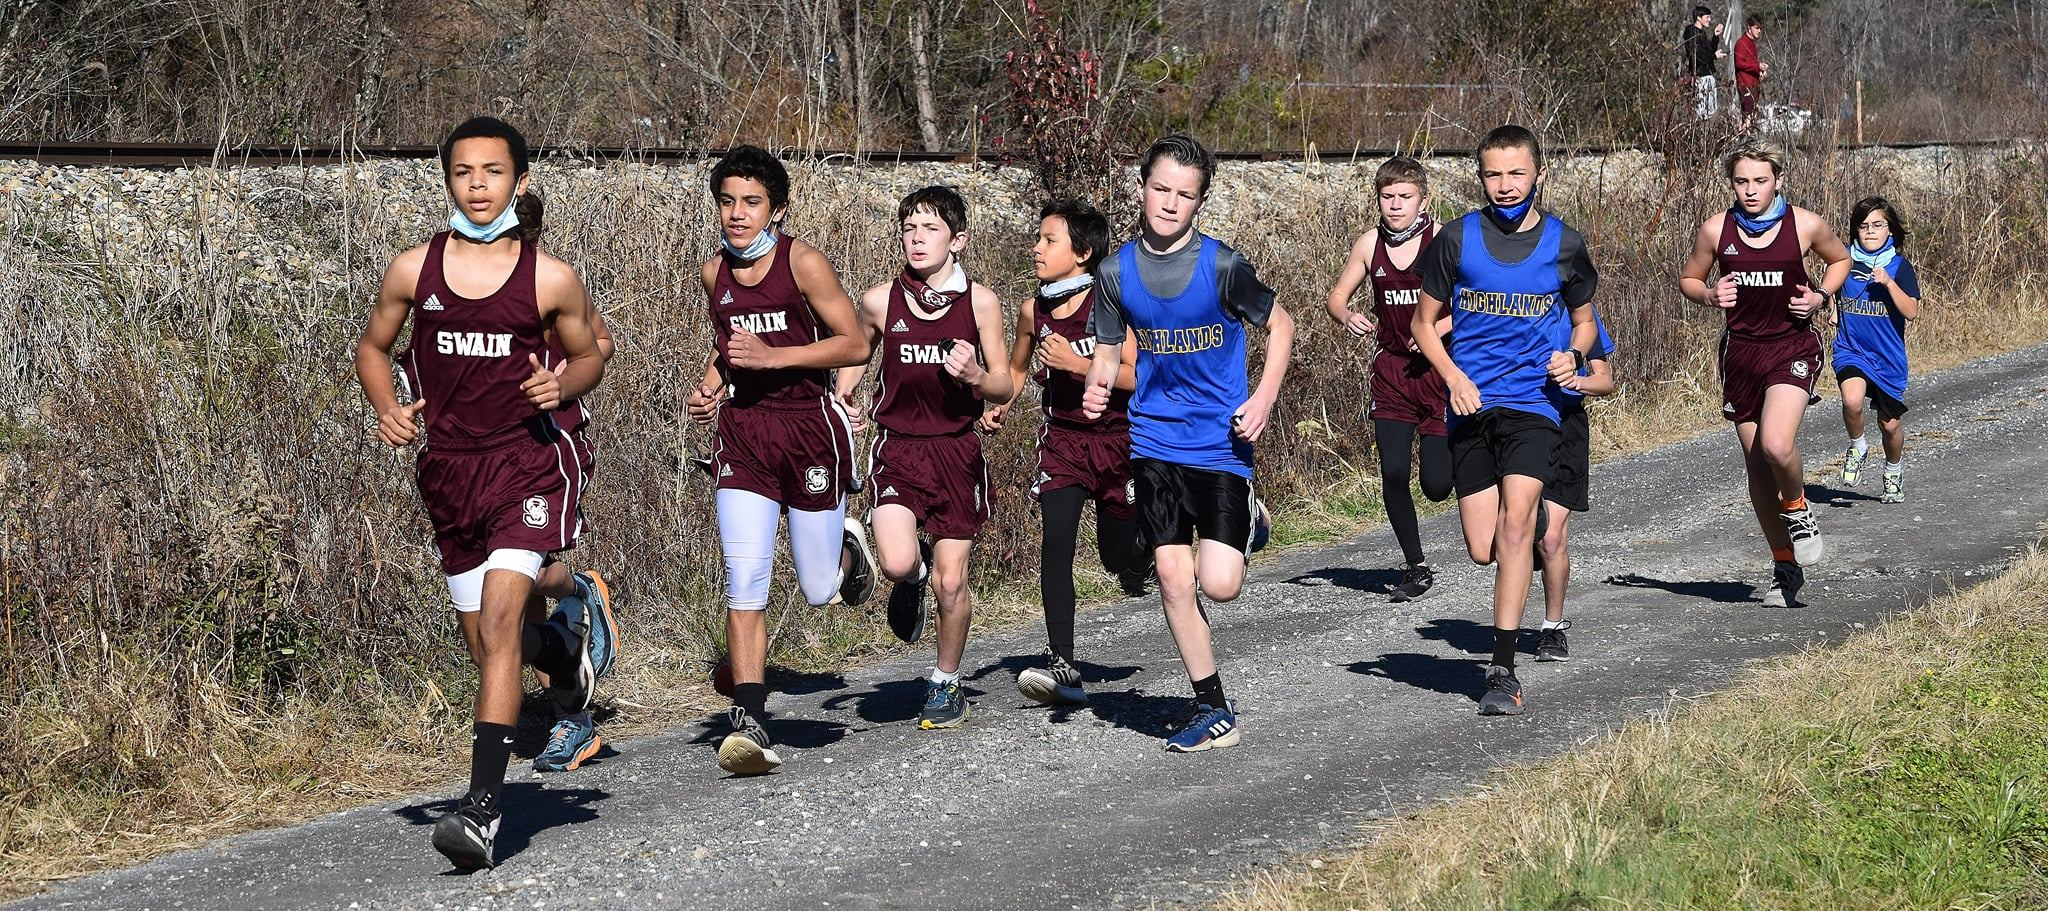 Highlands Middle Edges Swain in 1st Meet of Season